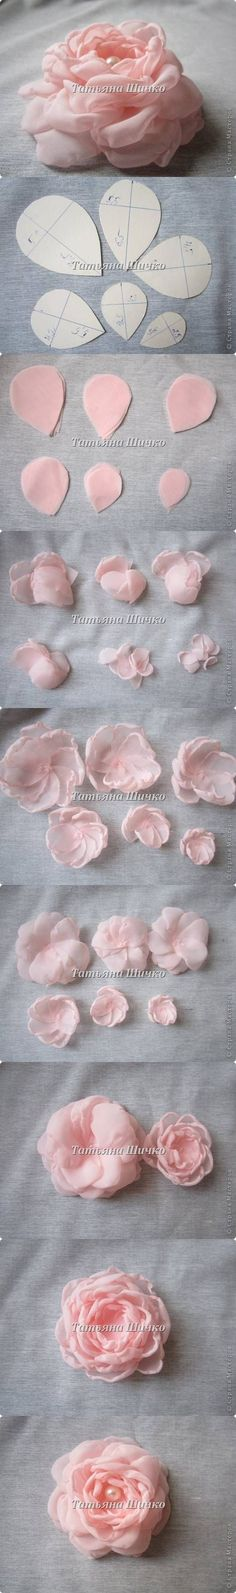 DIY Nylon Flower DIY Projects | UsefulDIY.com